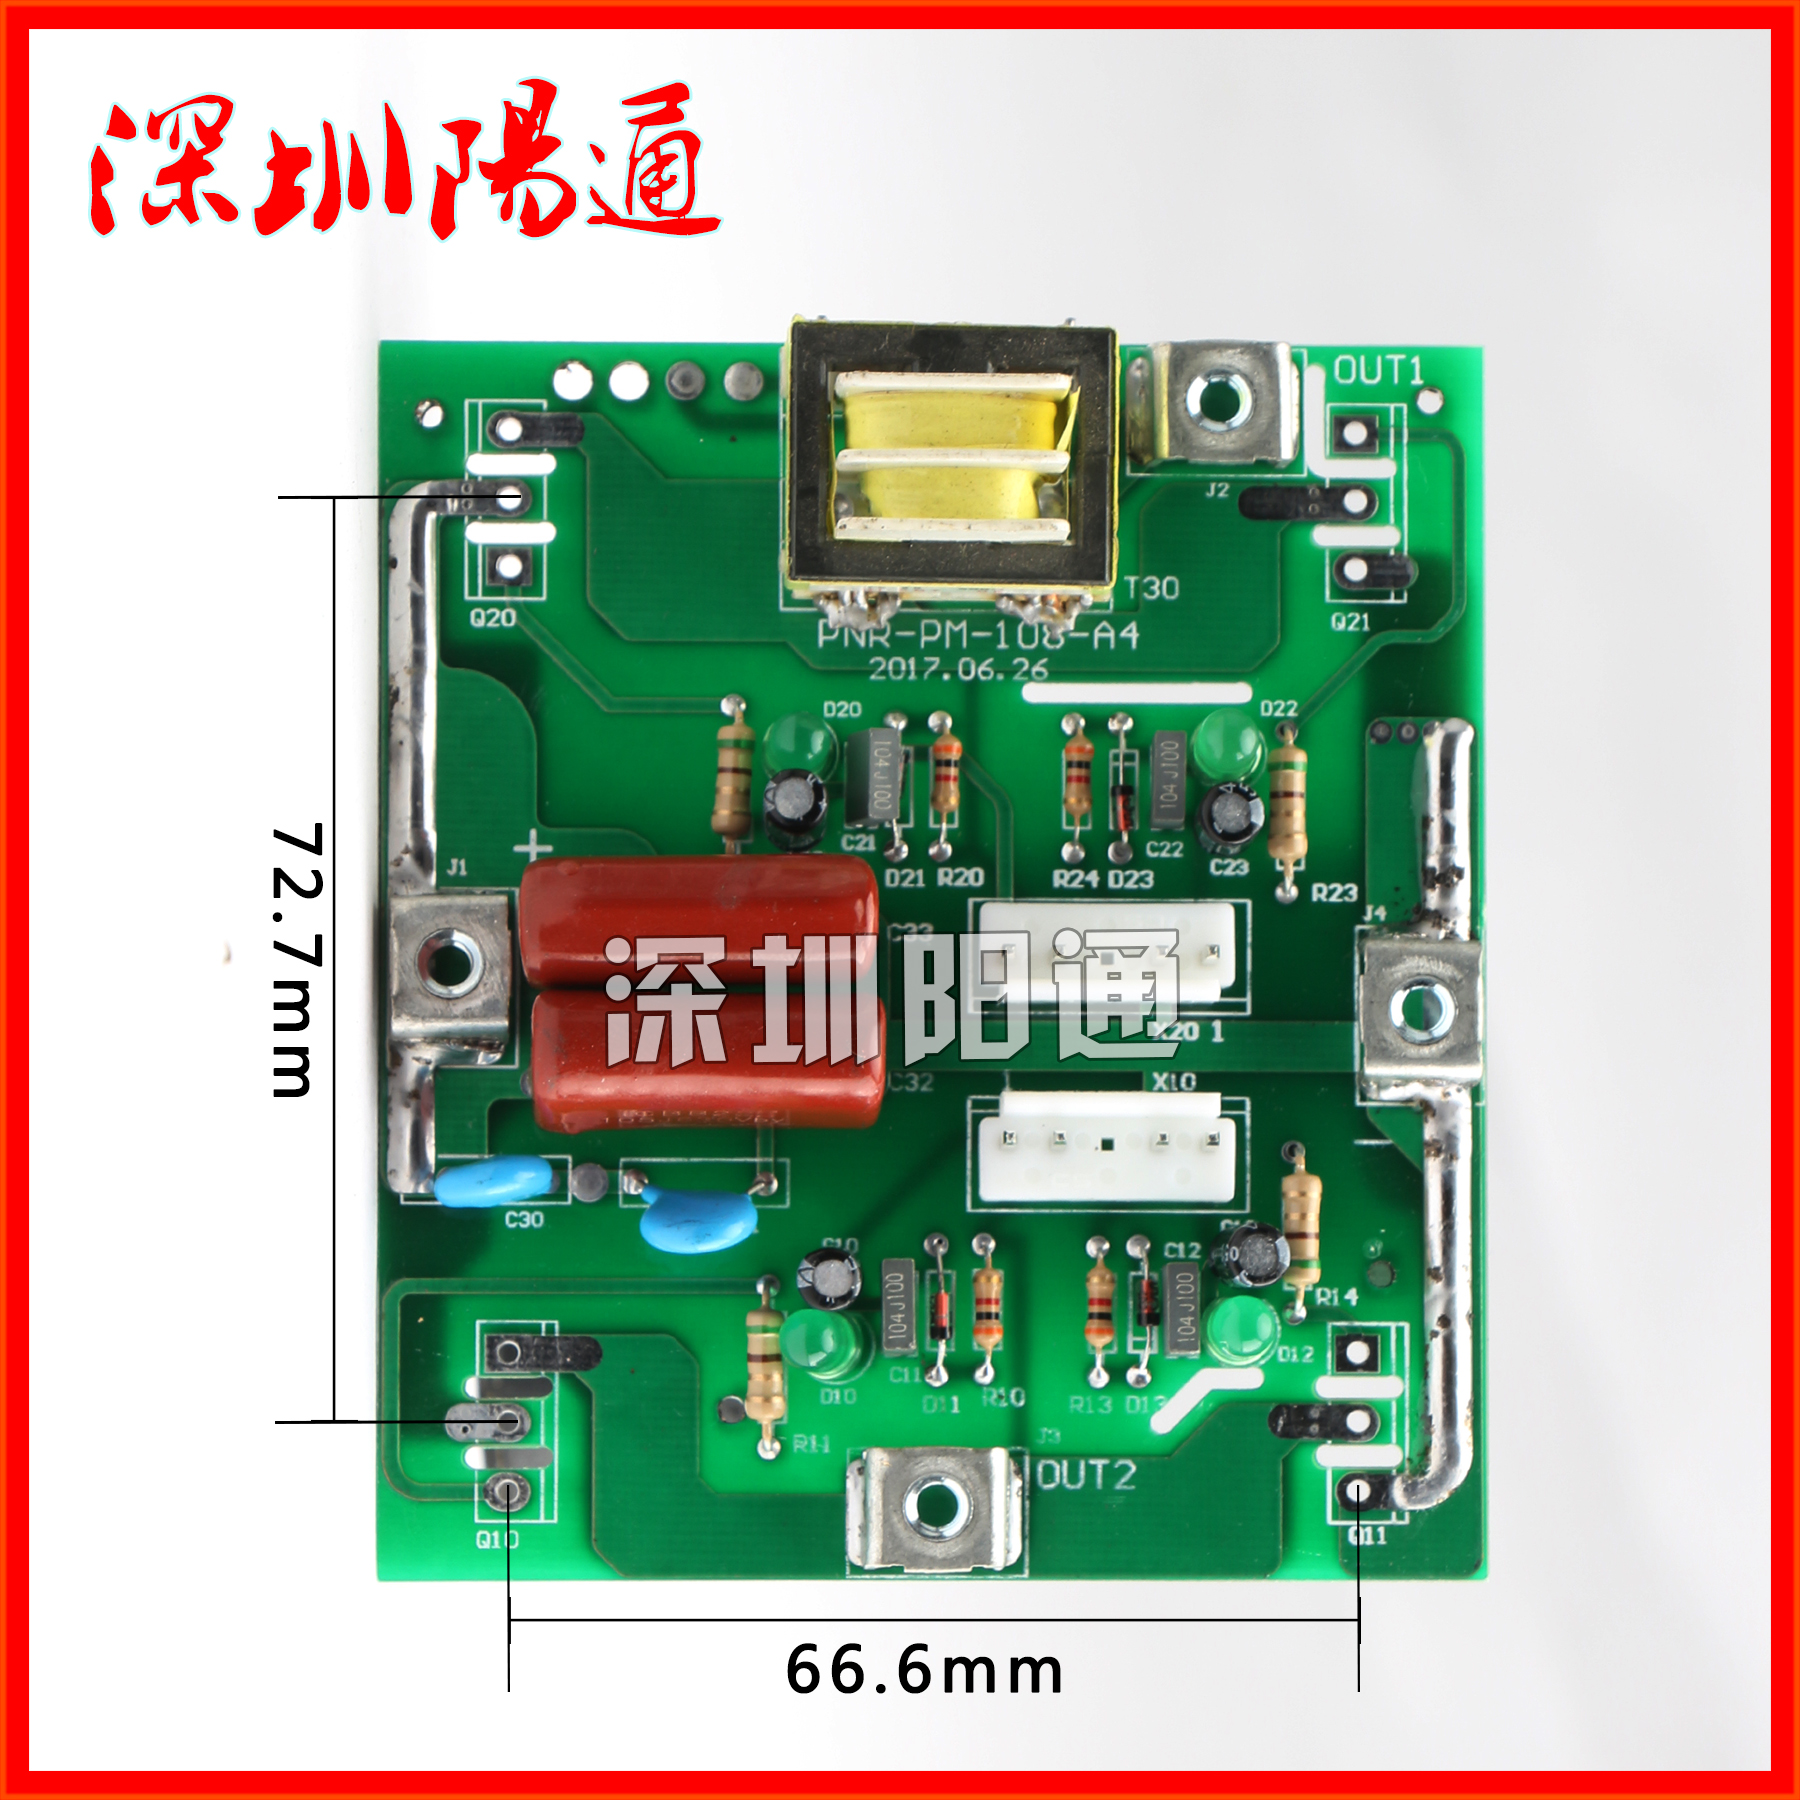 Buy Repair Of Inverter Plate Circuit Board Testing Welding Parts The Original Electric Welder Factory New Accessories Warehousing Before